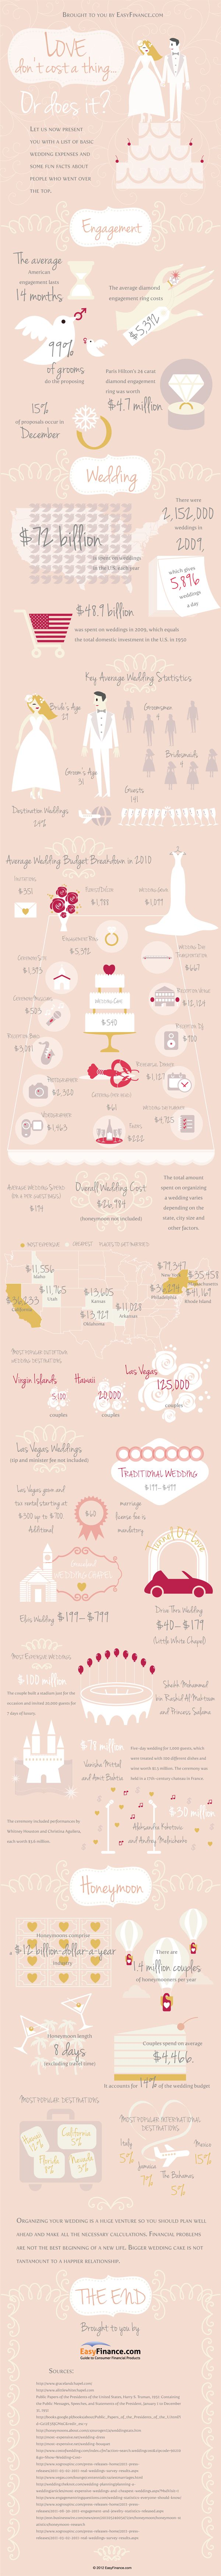 Average wedding cost statistics - yikes!! Guess there's a lot I don't know!